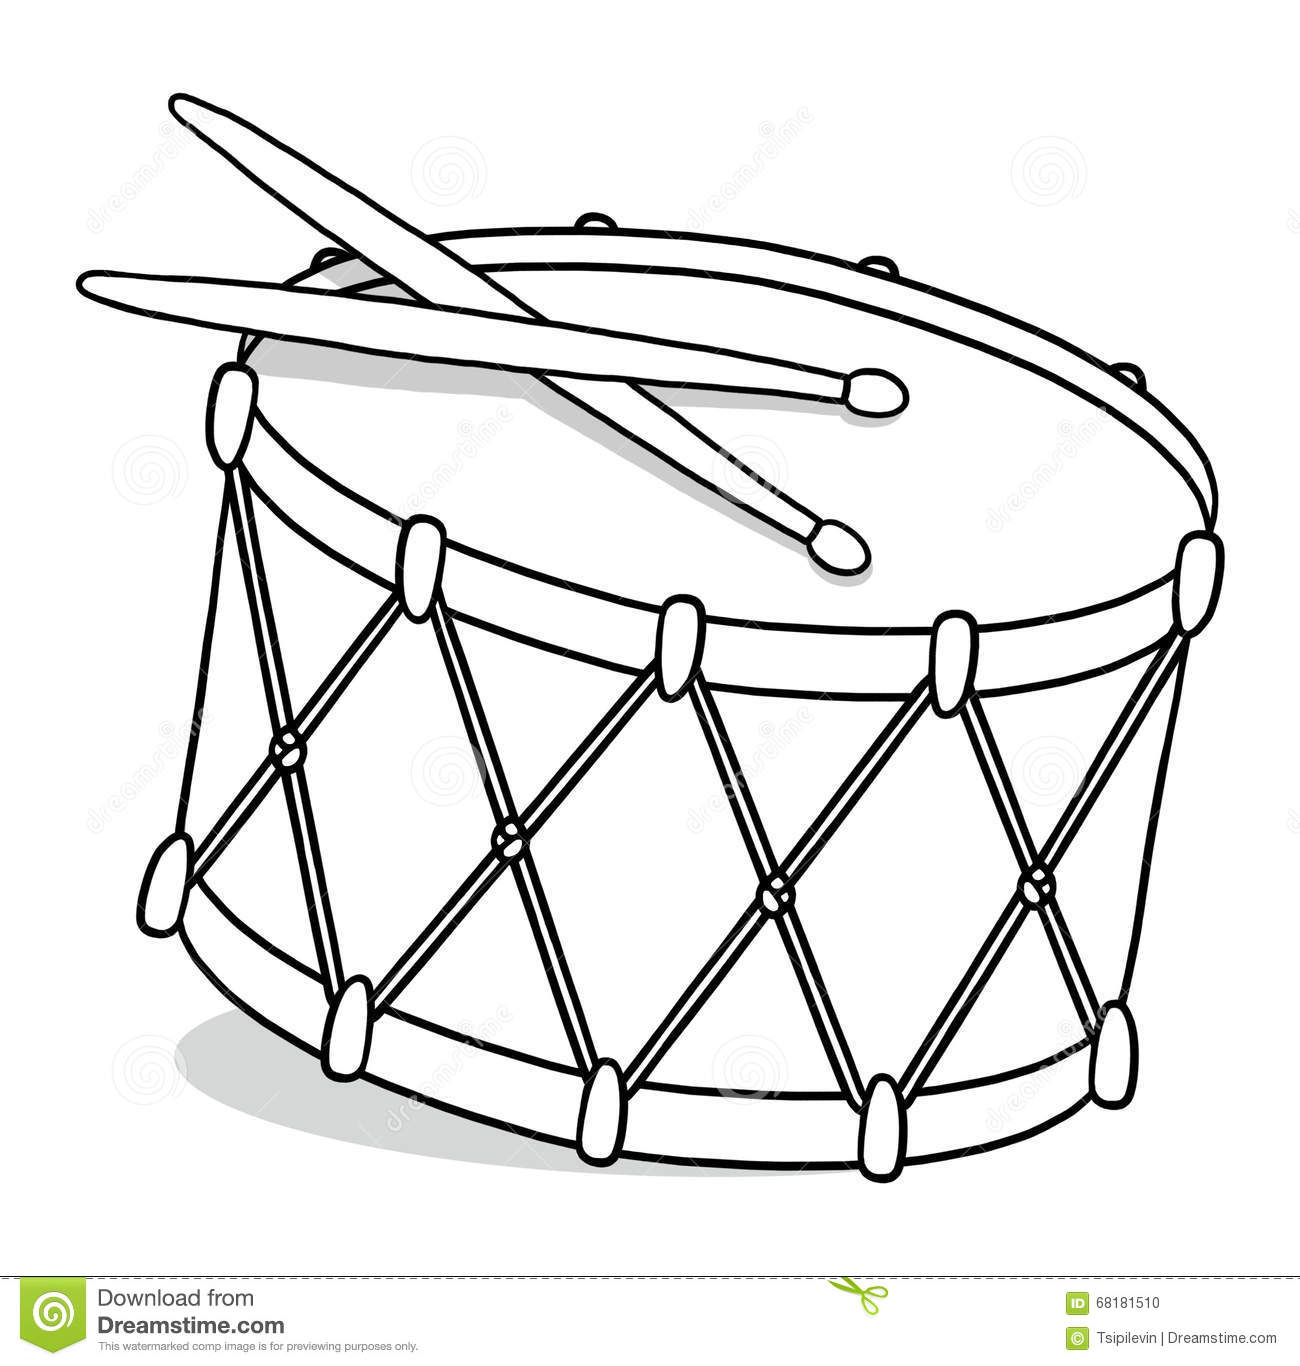 drum outline illustration stock illustration